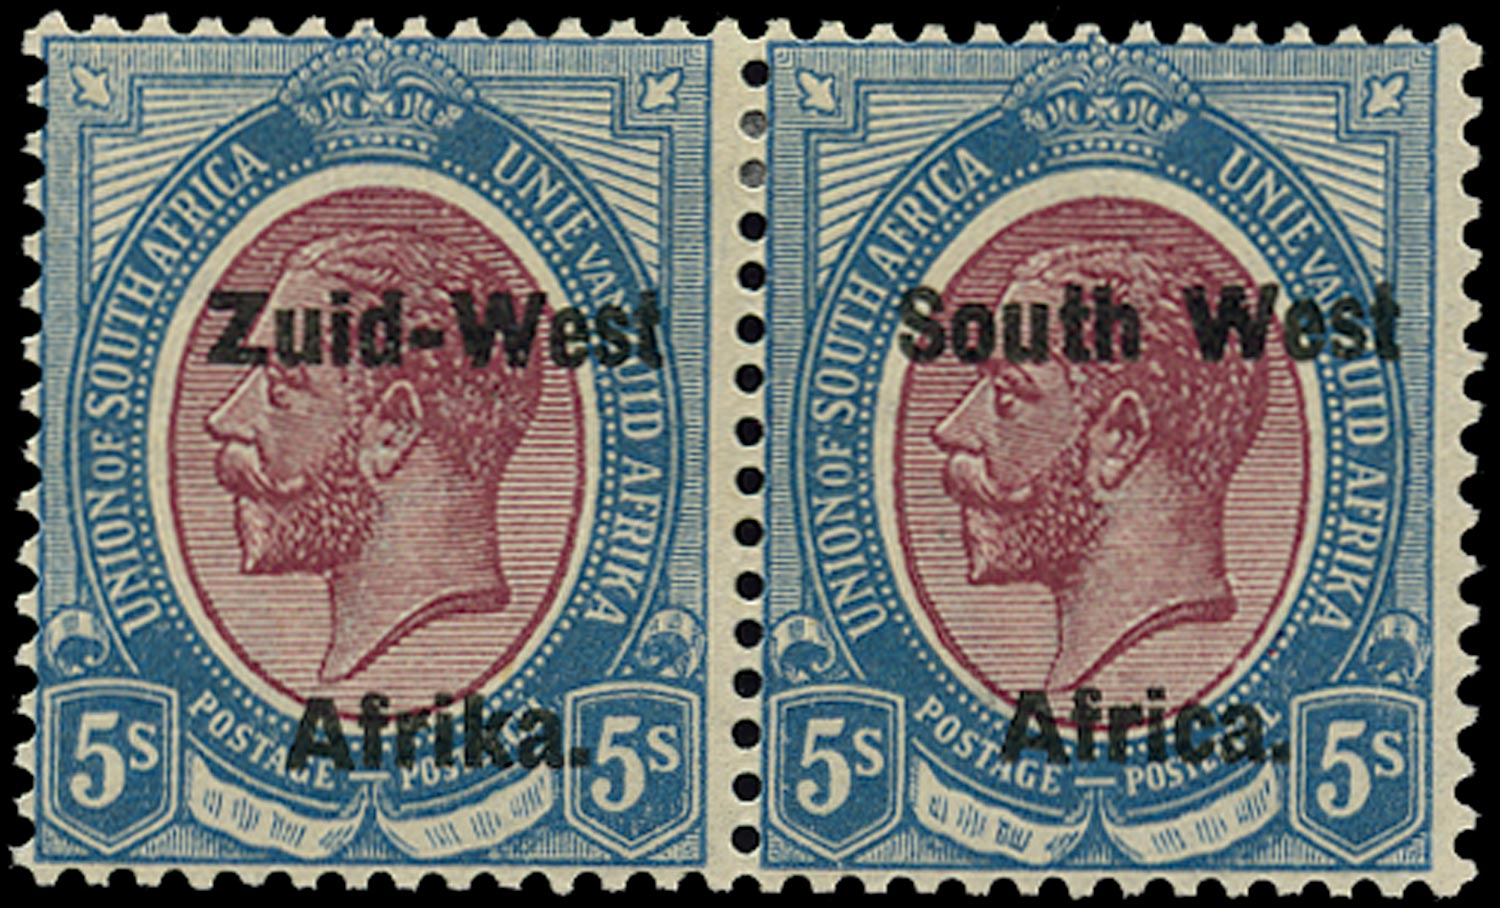 SOUTH WEST AFRICA 1923  SG13 Mint 5s purple and blue overprint setting II